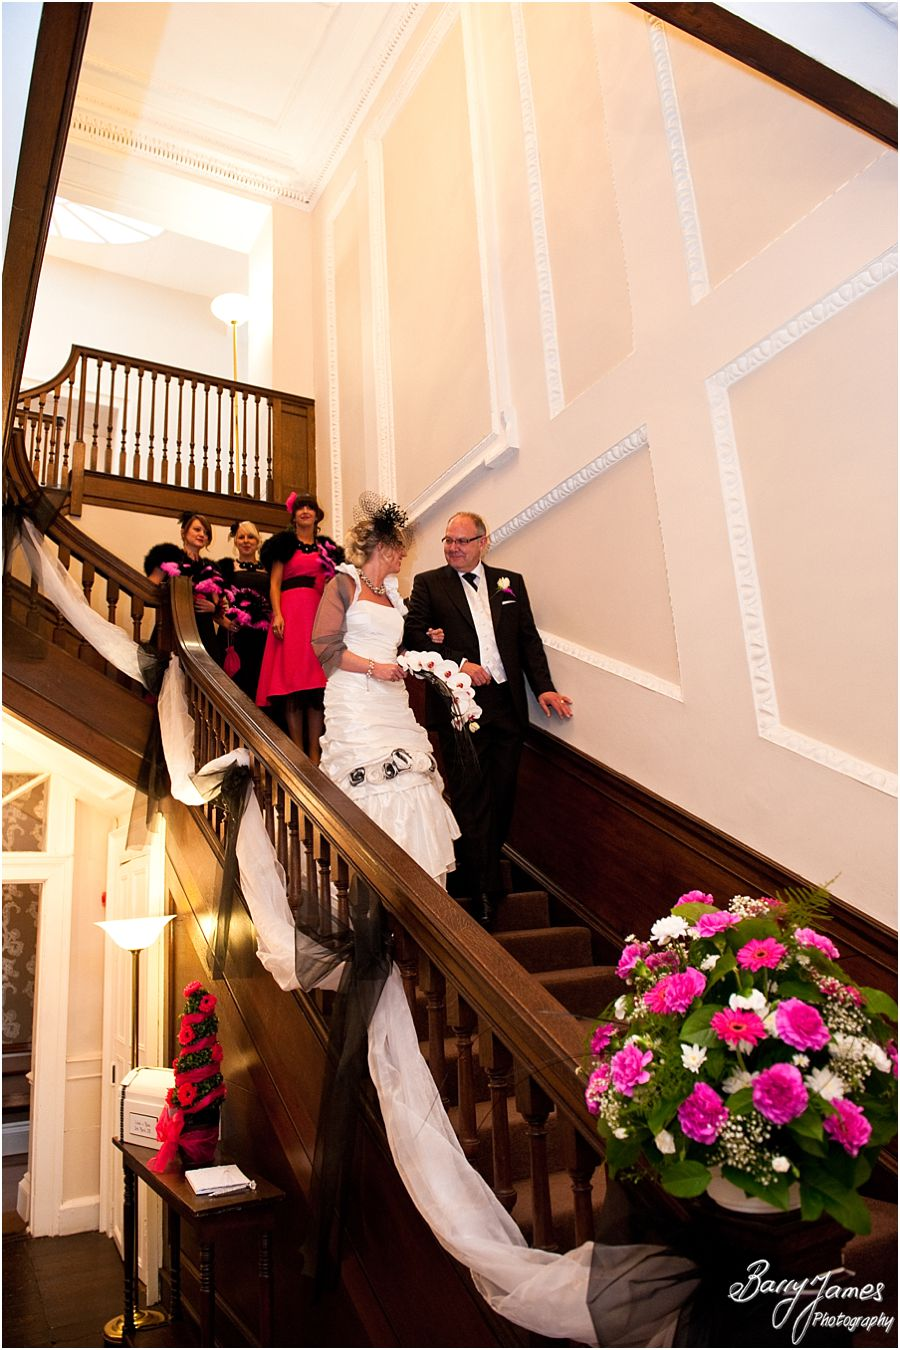 Affordable timeless wedding photography at Somerford Hall in Brewood by Full Time Professional Wedding Photographer Barry James